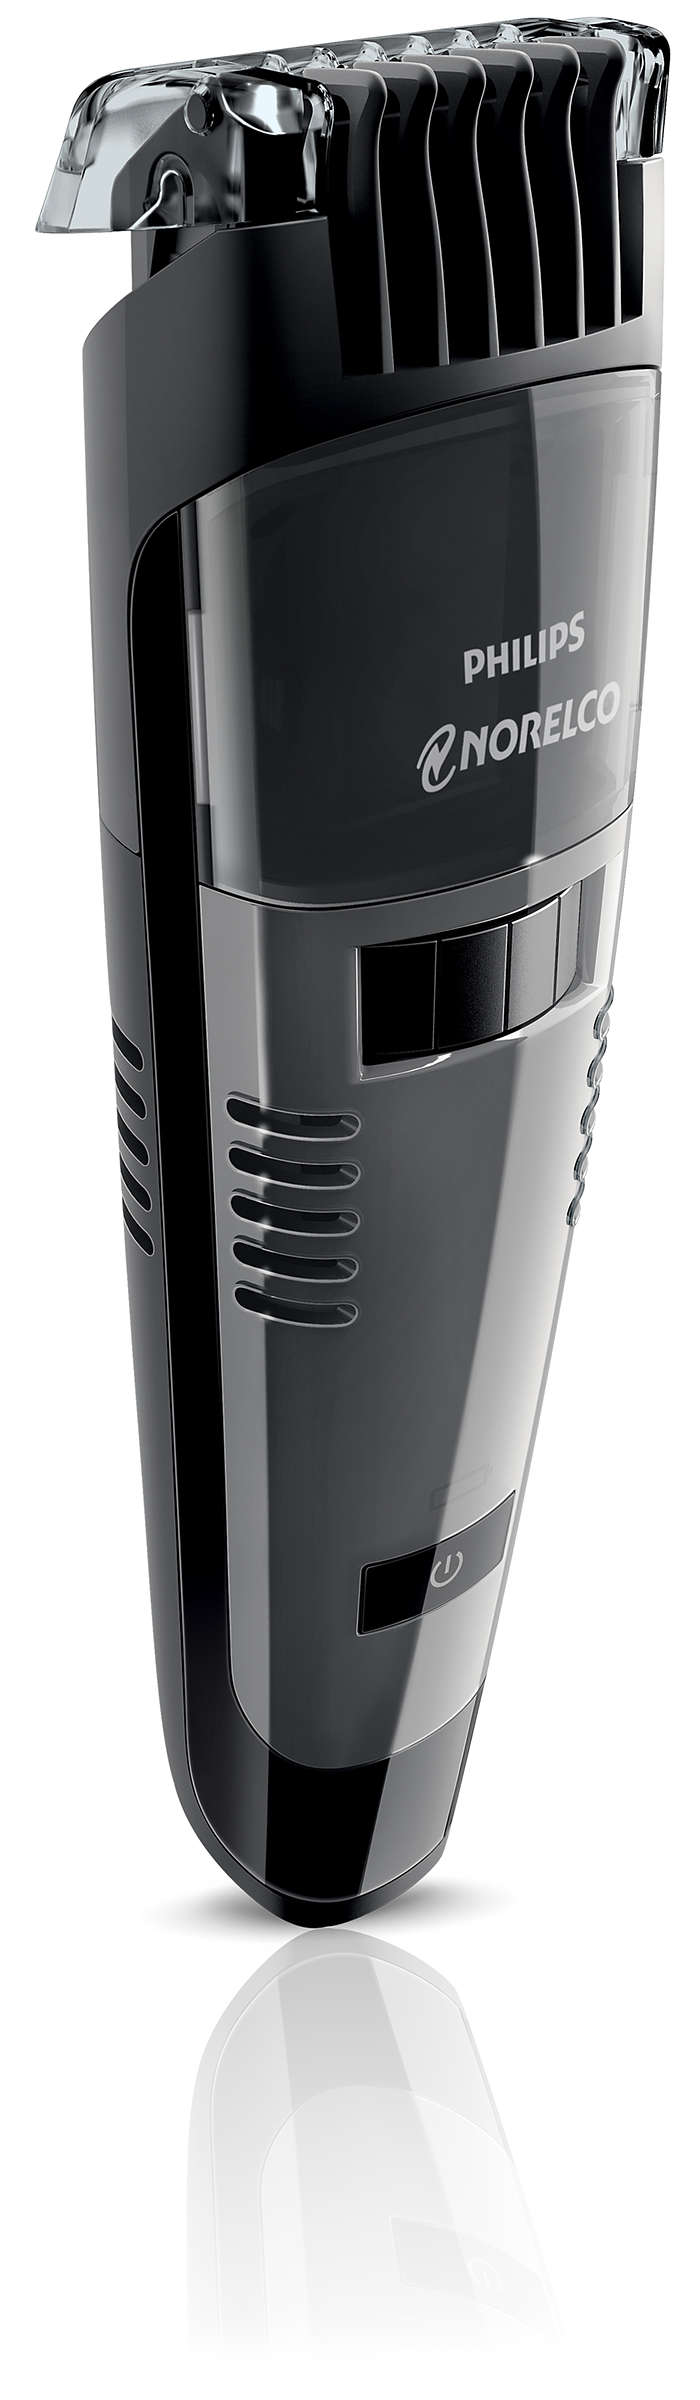 beardtrimmer 7100 vacuum beard trimmer series 7000 qt4050 41 norelco. Black Bedroom Furniture Sets. Home Design Ideas